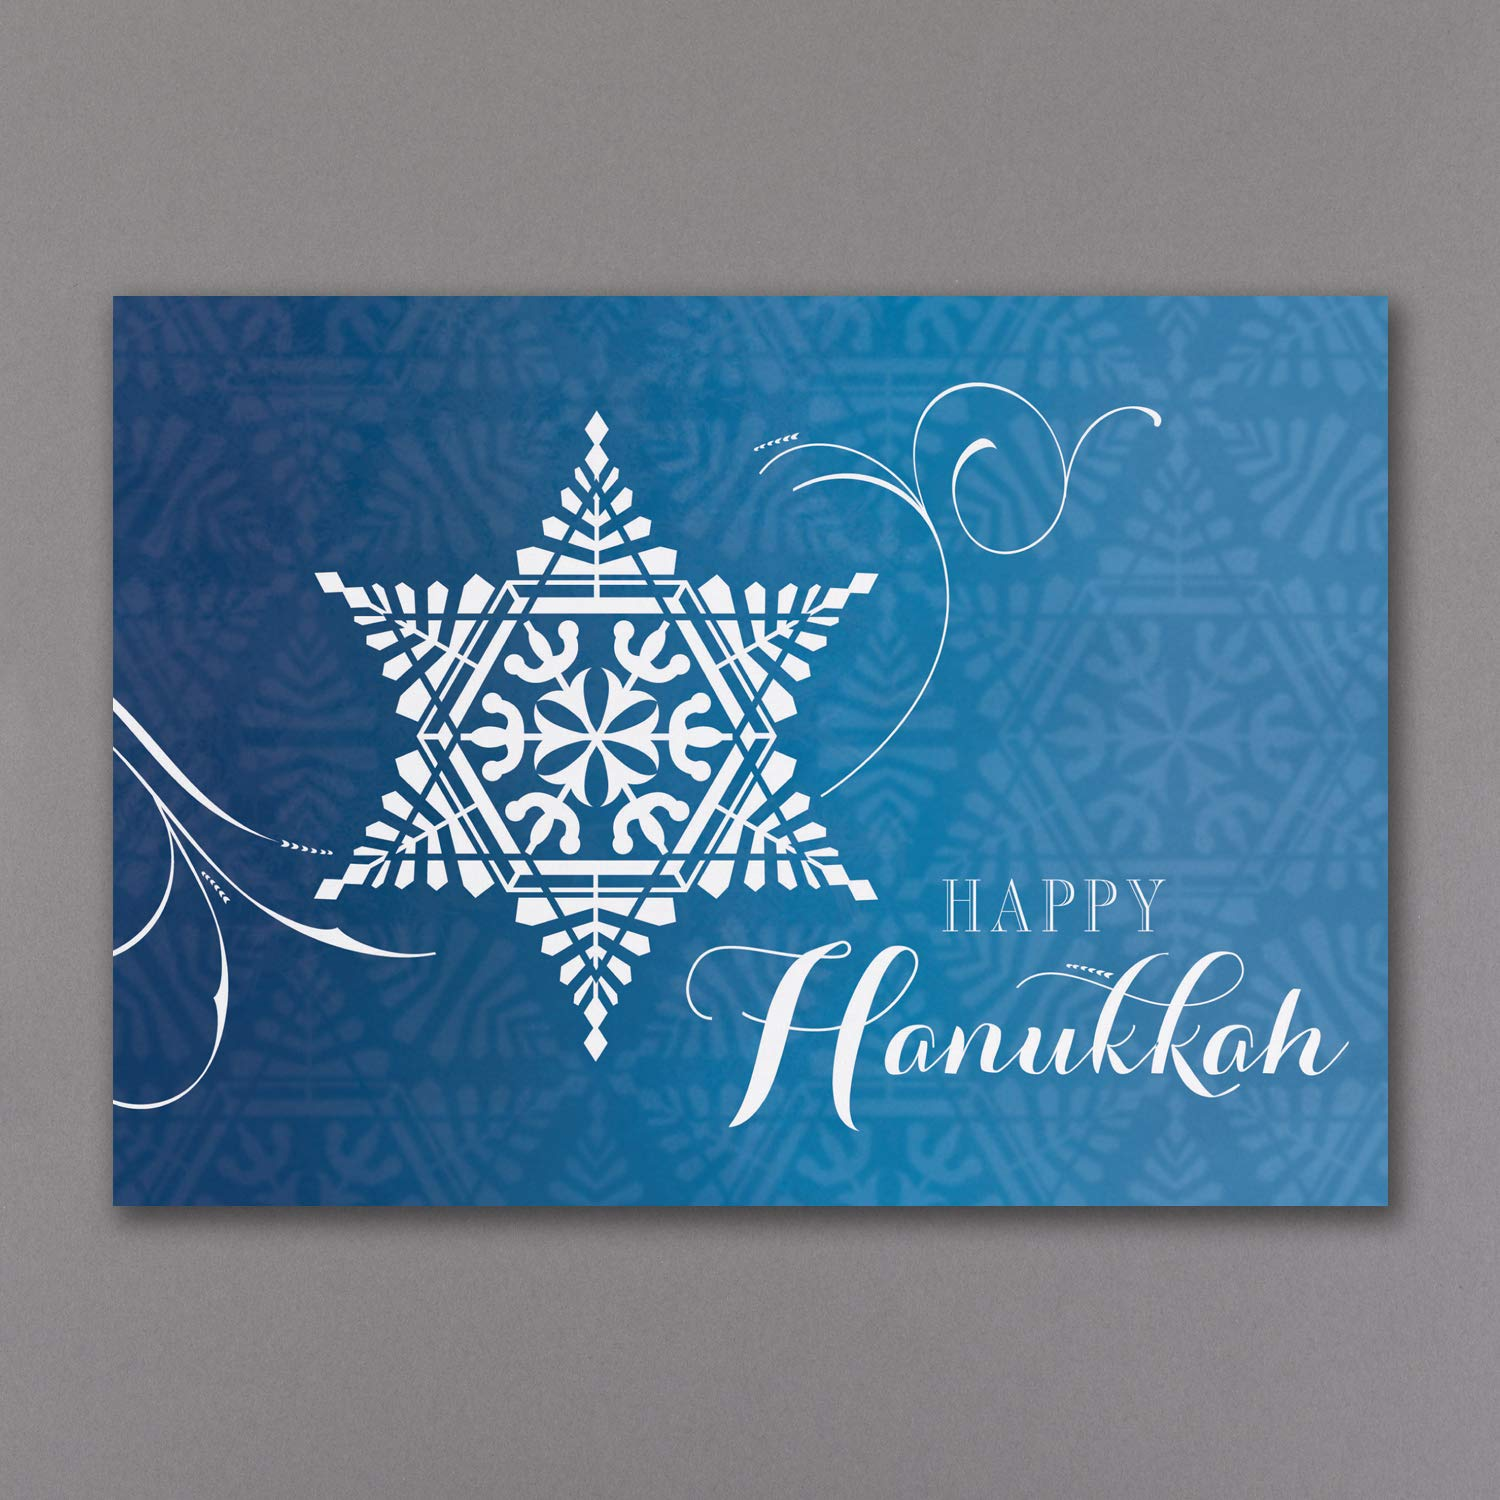 Happy Hanukkah Cards  2019 – Free Hanukkah Cards Images For Facebook, WhatsApp & Intsagaram